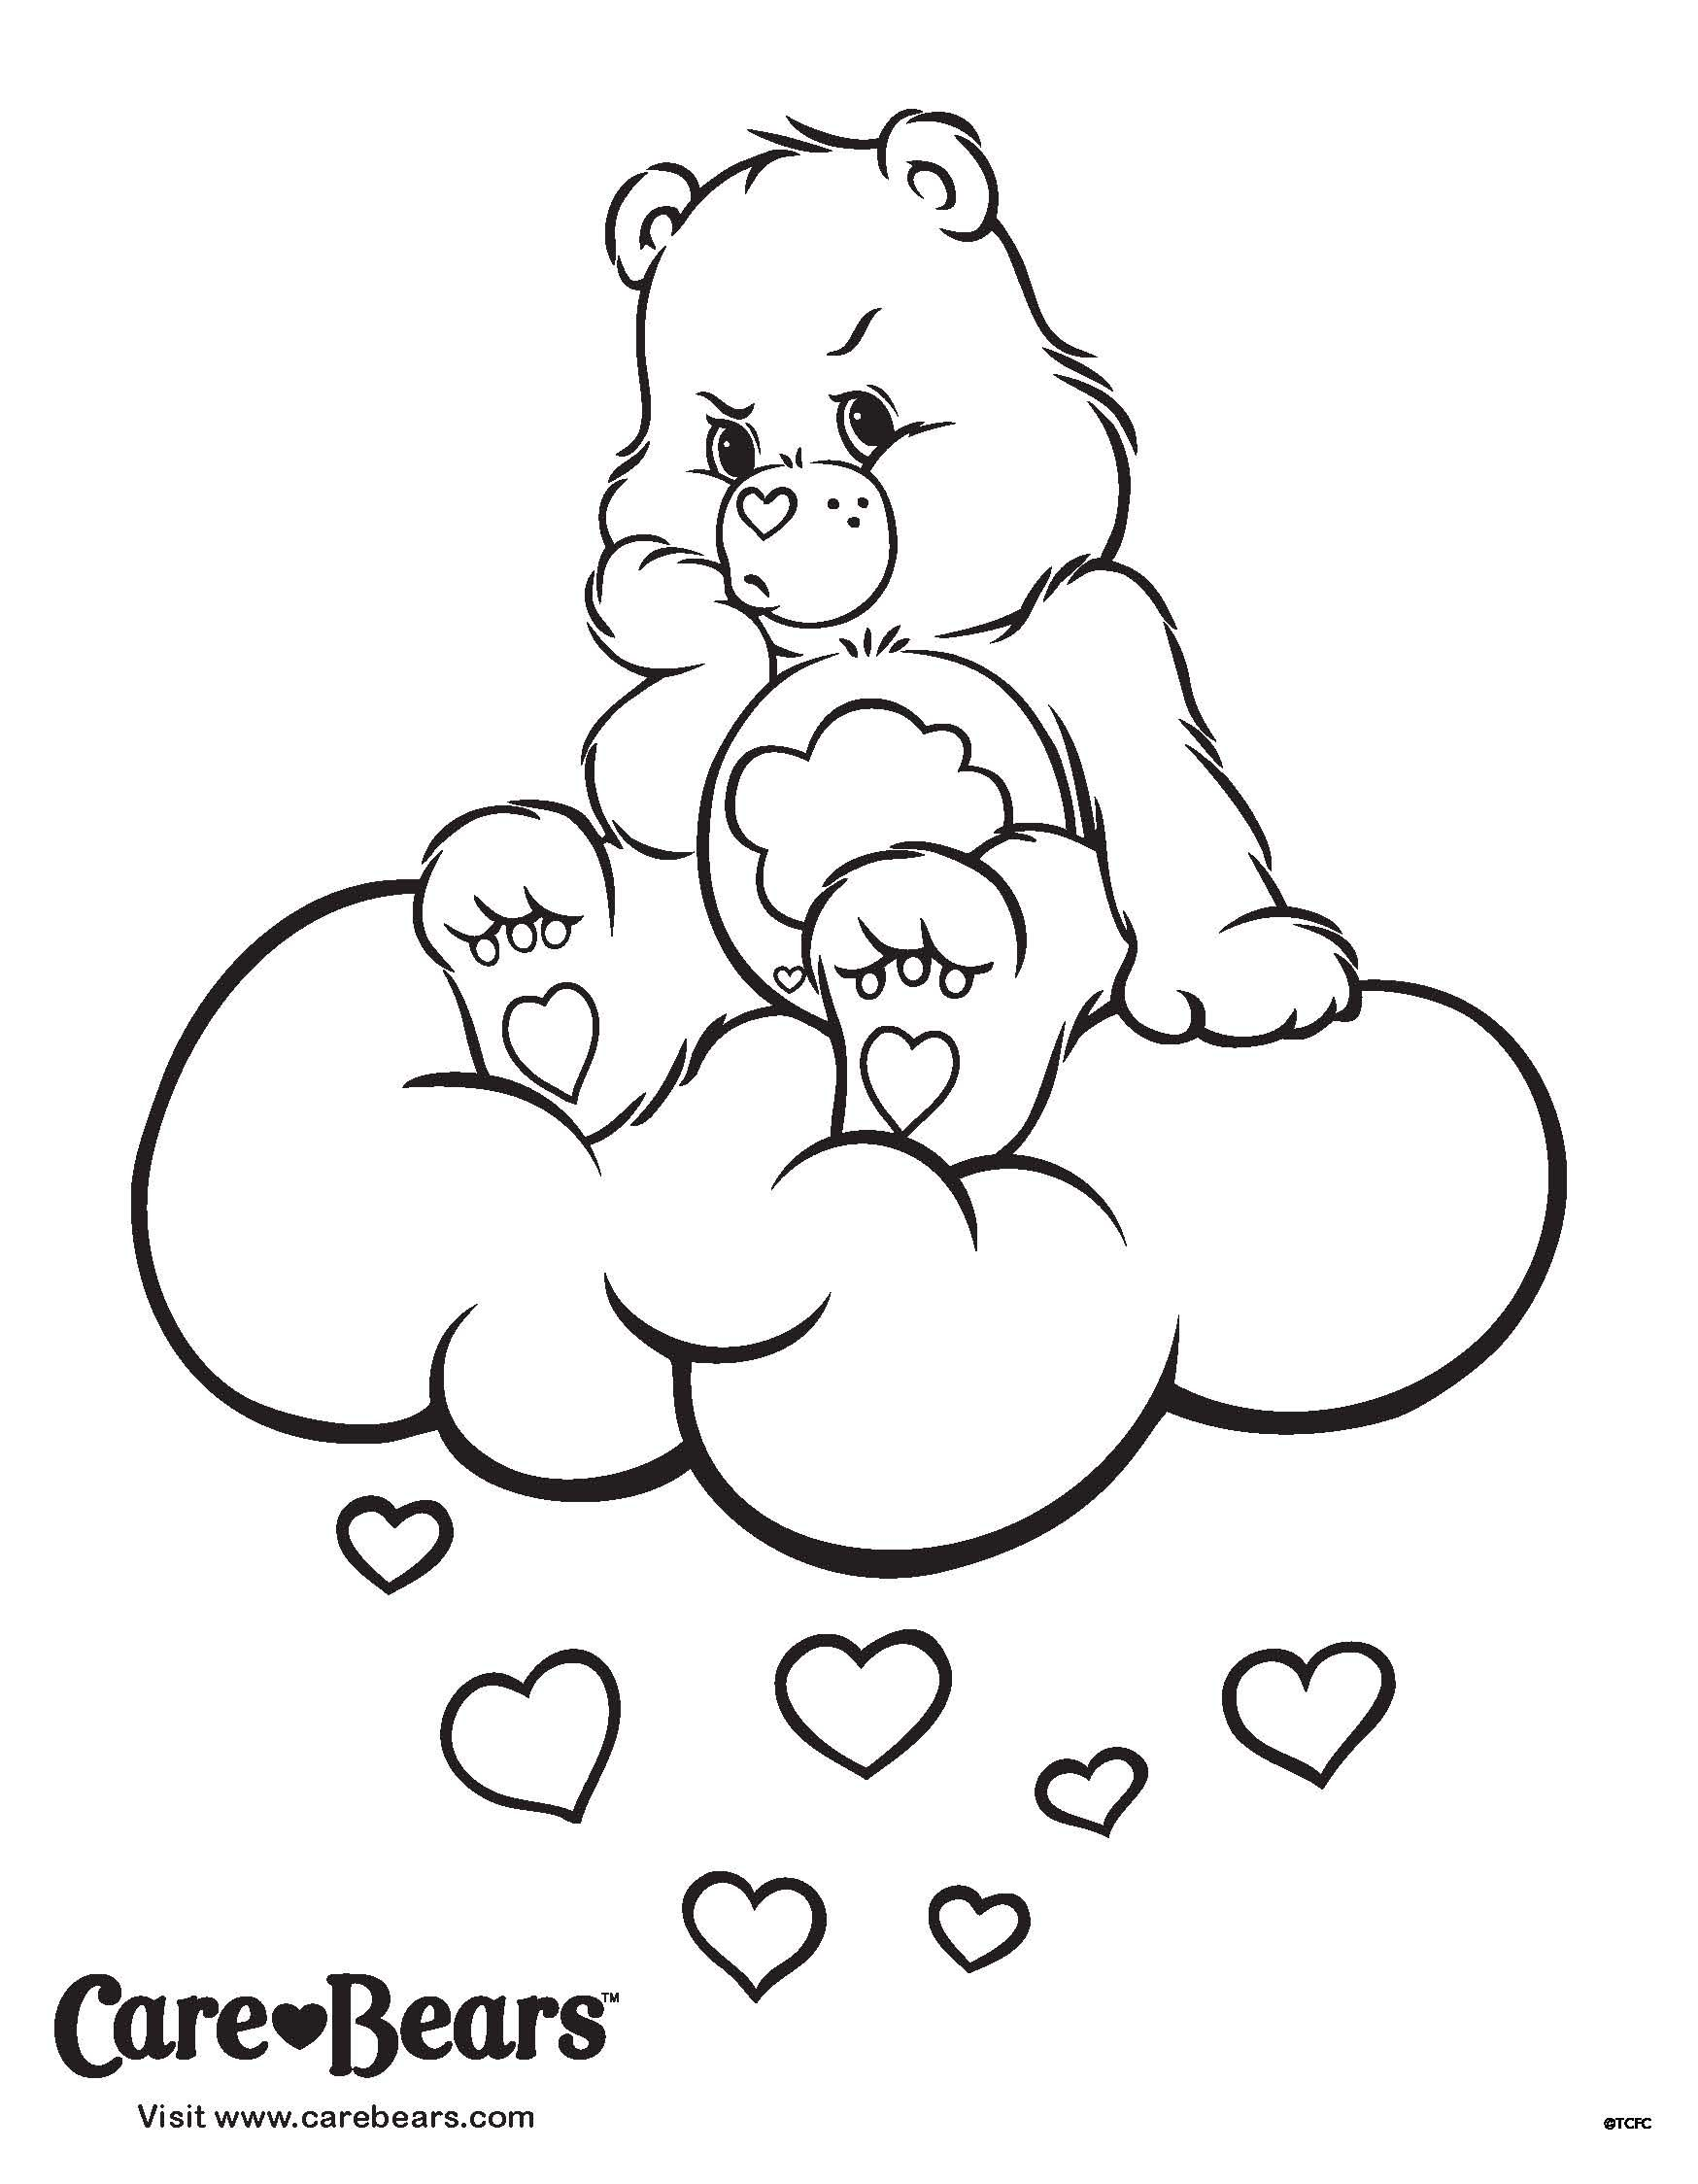 - Care Bears Coloring Sheet: Don't Let The Grumpies Get You! (With